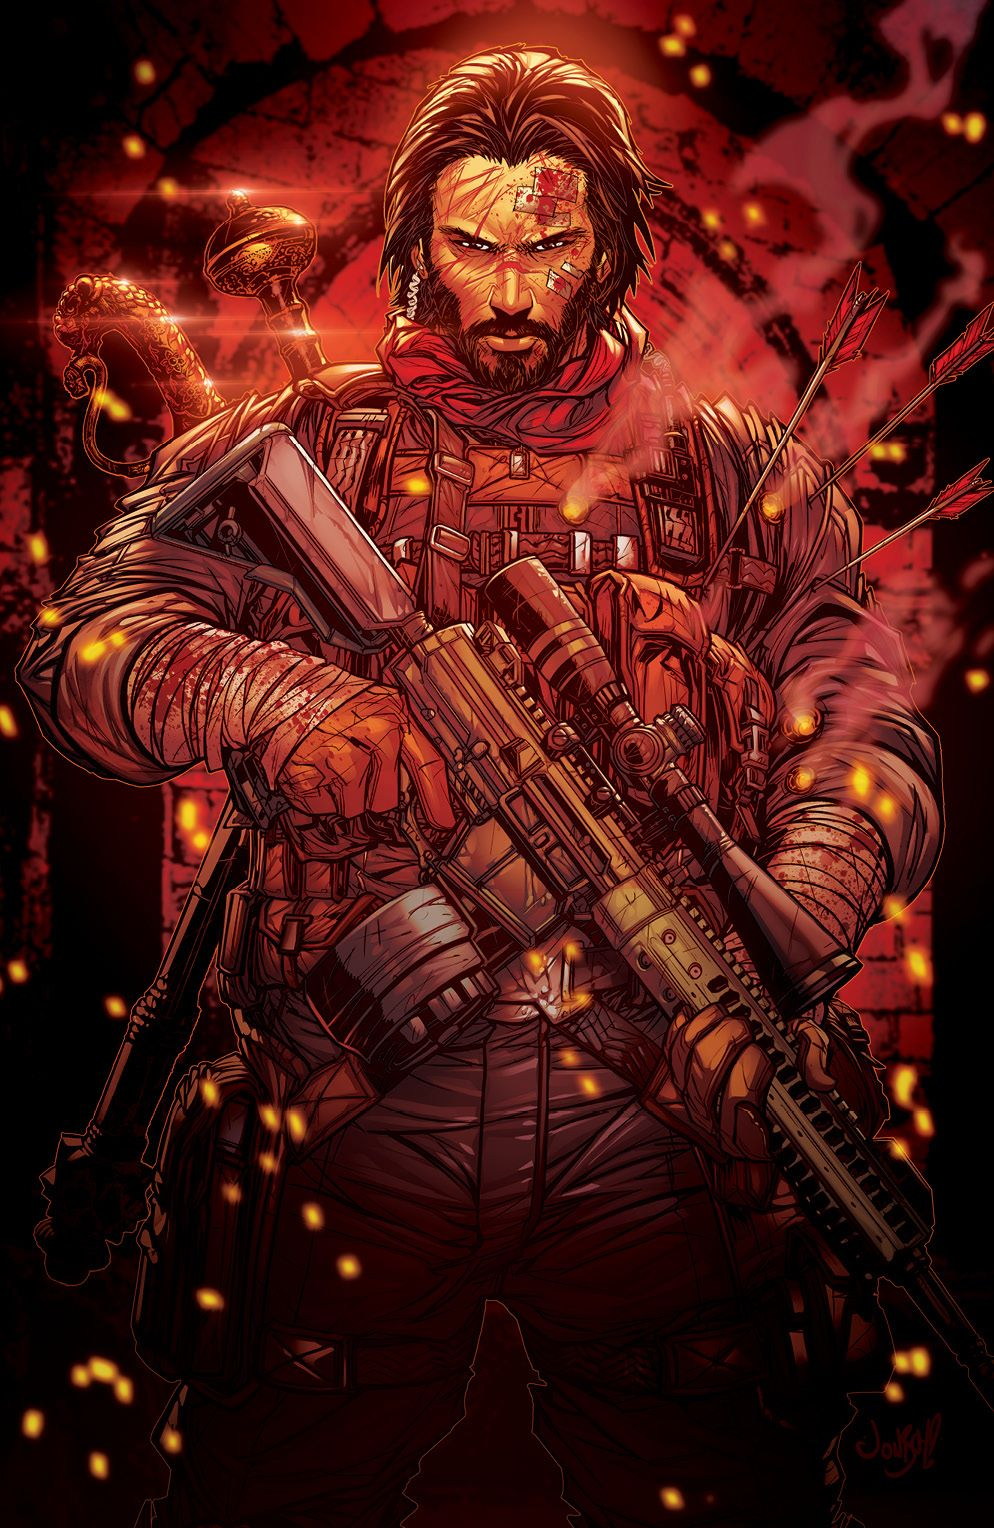 BRZRKR_001_Cover_BC_Variant_001_LOW ComicList Previews: BRZRKR #1 (Of 12)